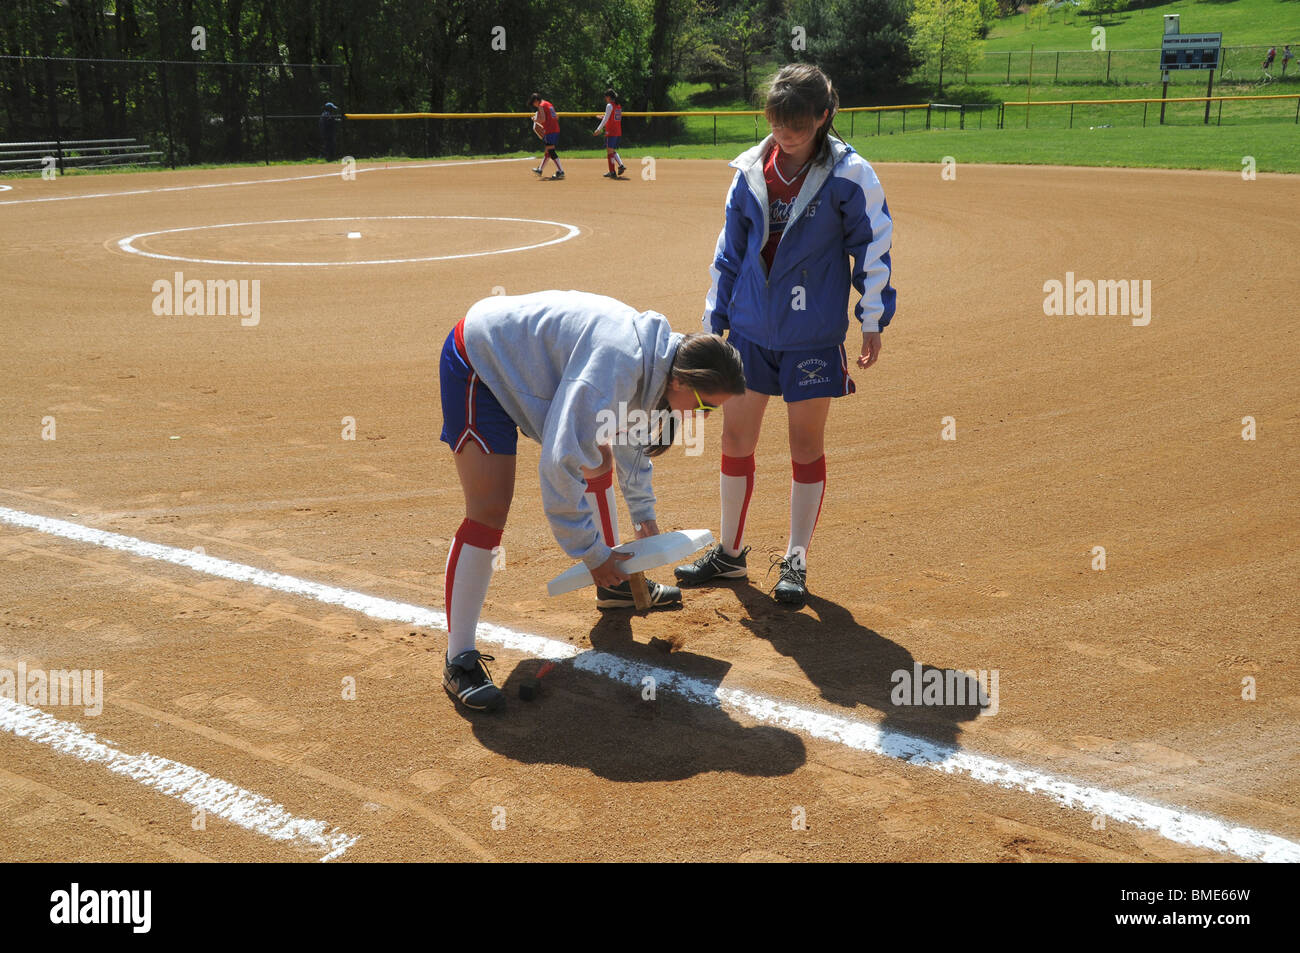 wo girls repair  one of the bases used in a baseball game - Stock Image